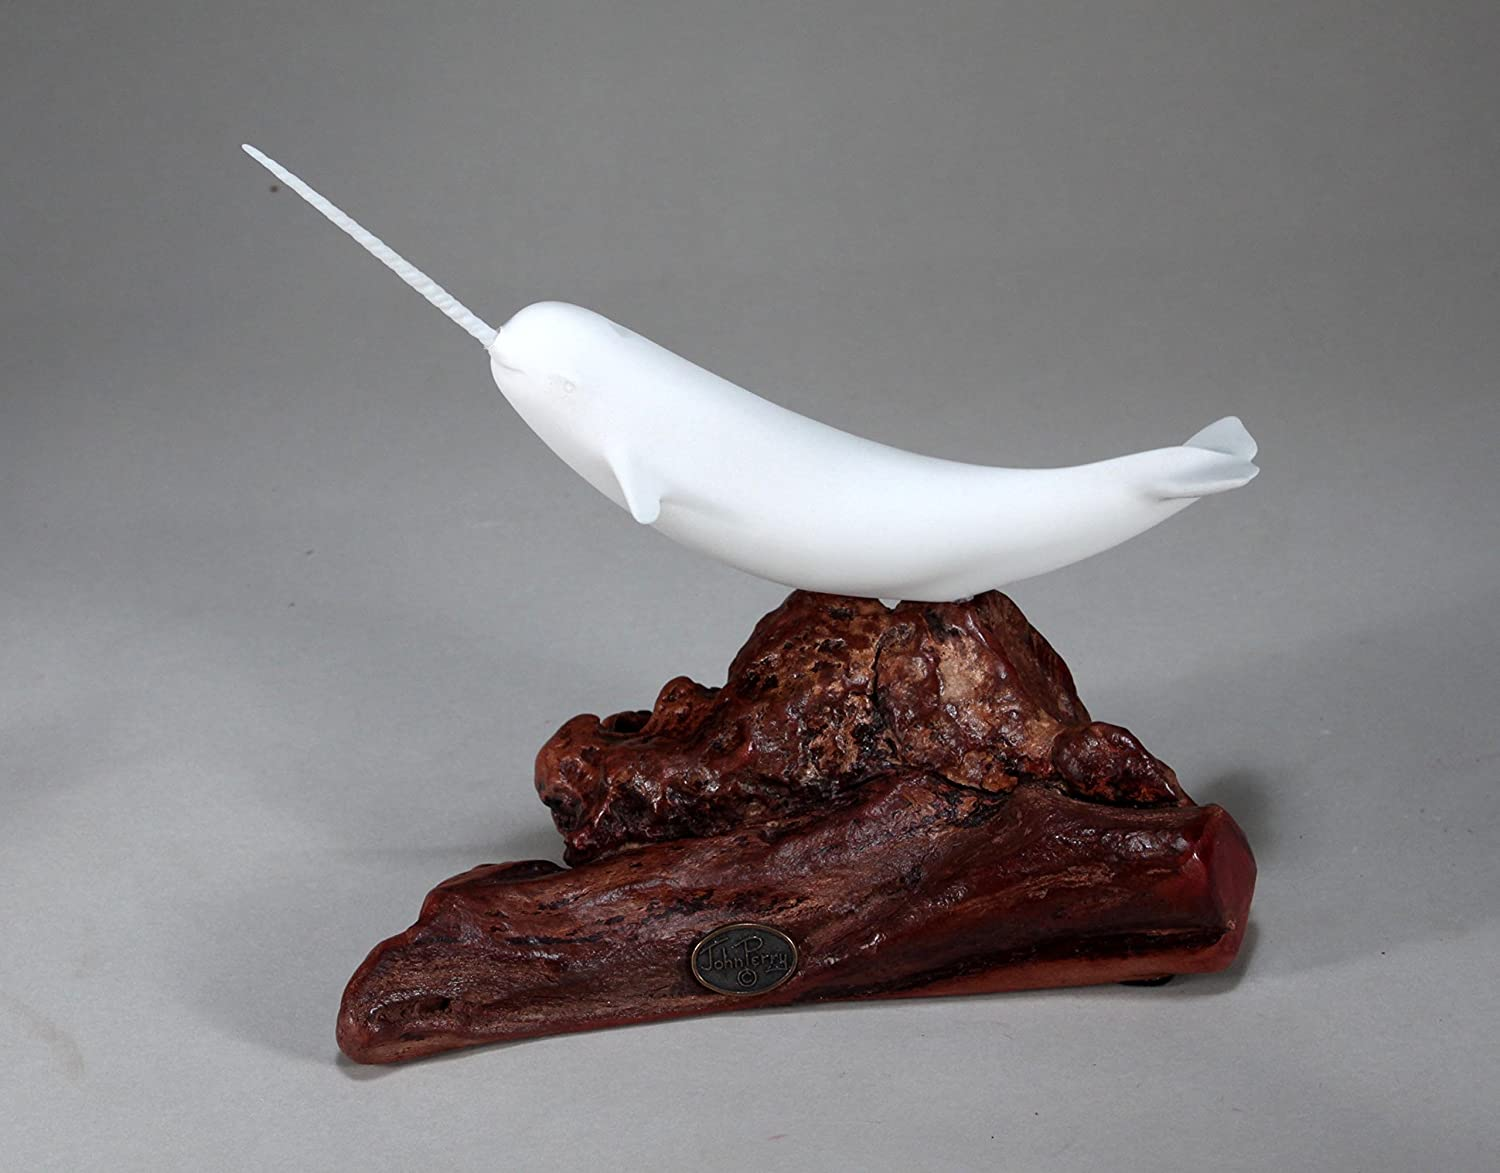 Narwhal Sculpture New Direct by John Perry Pellucida On Wood 7in Tall